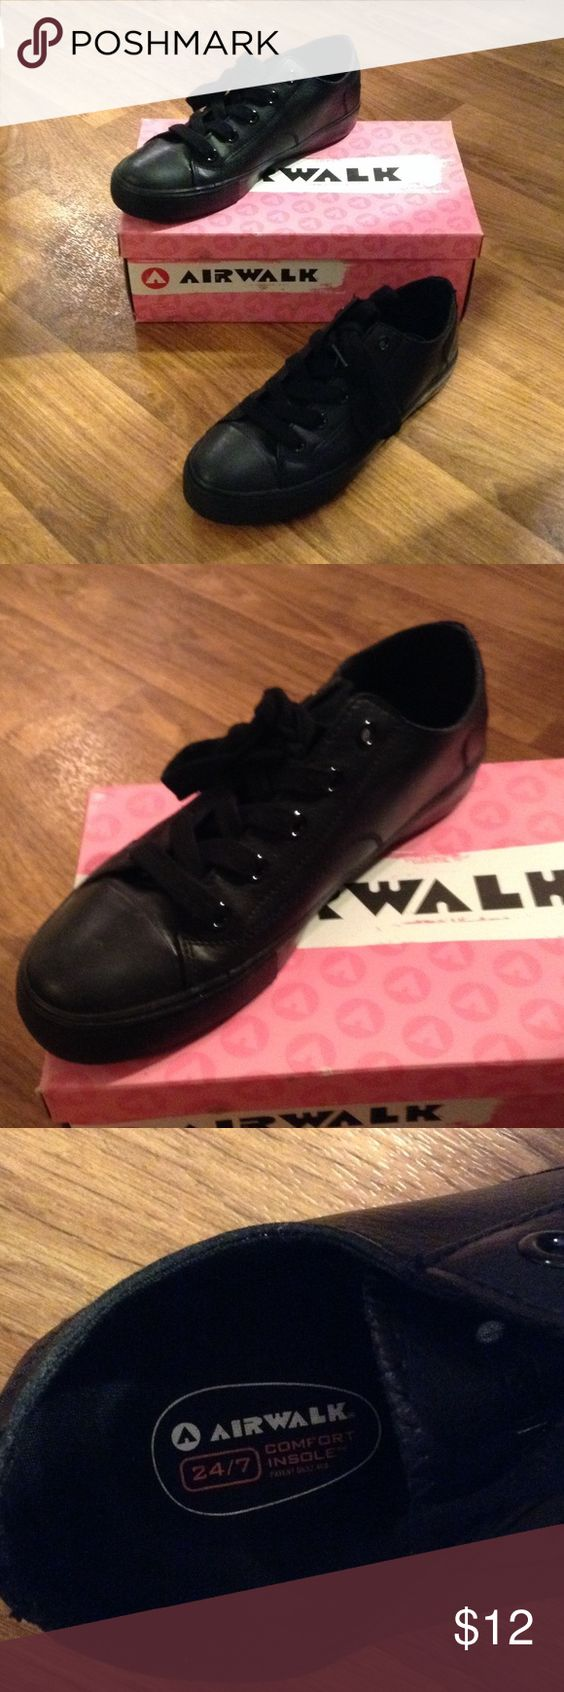 Non slip Converse looking shoe I have only worn these twice! When I had started a new job. That I needed them since they were non slip. They are comfortable! They are a really cute work shoe. Original box included if wanted. Airwalk Shoes Sneakers